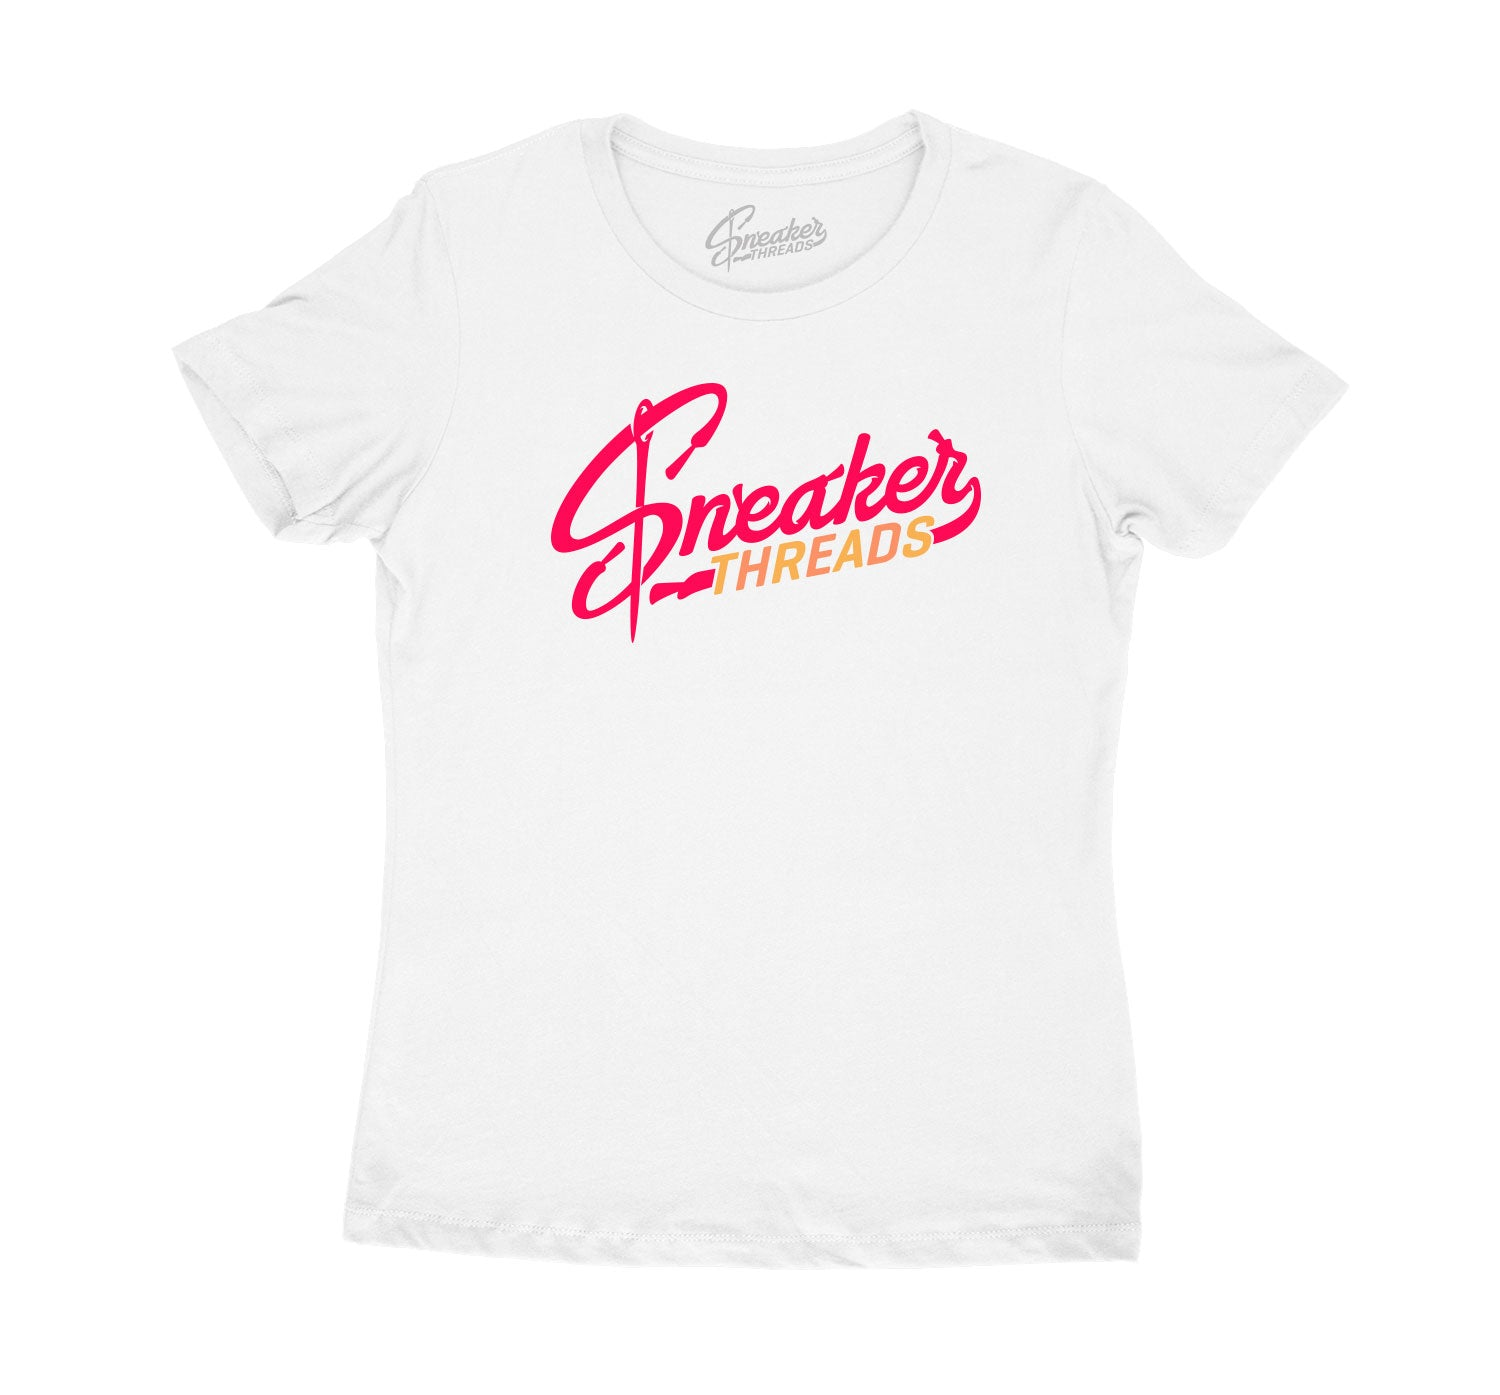 WOmens Jordan 12 hot punch sneaker matching womens tees